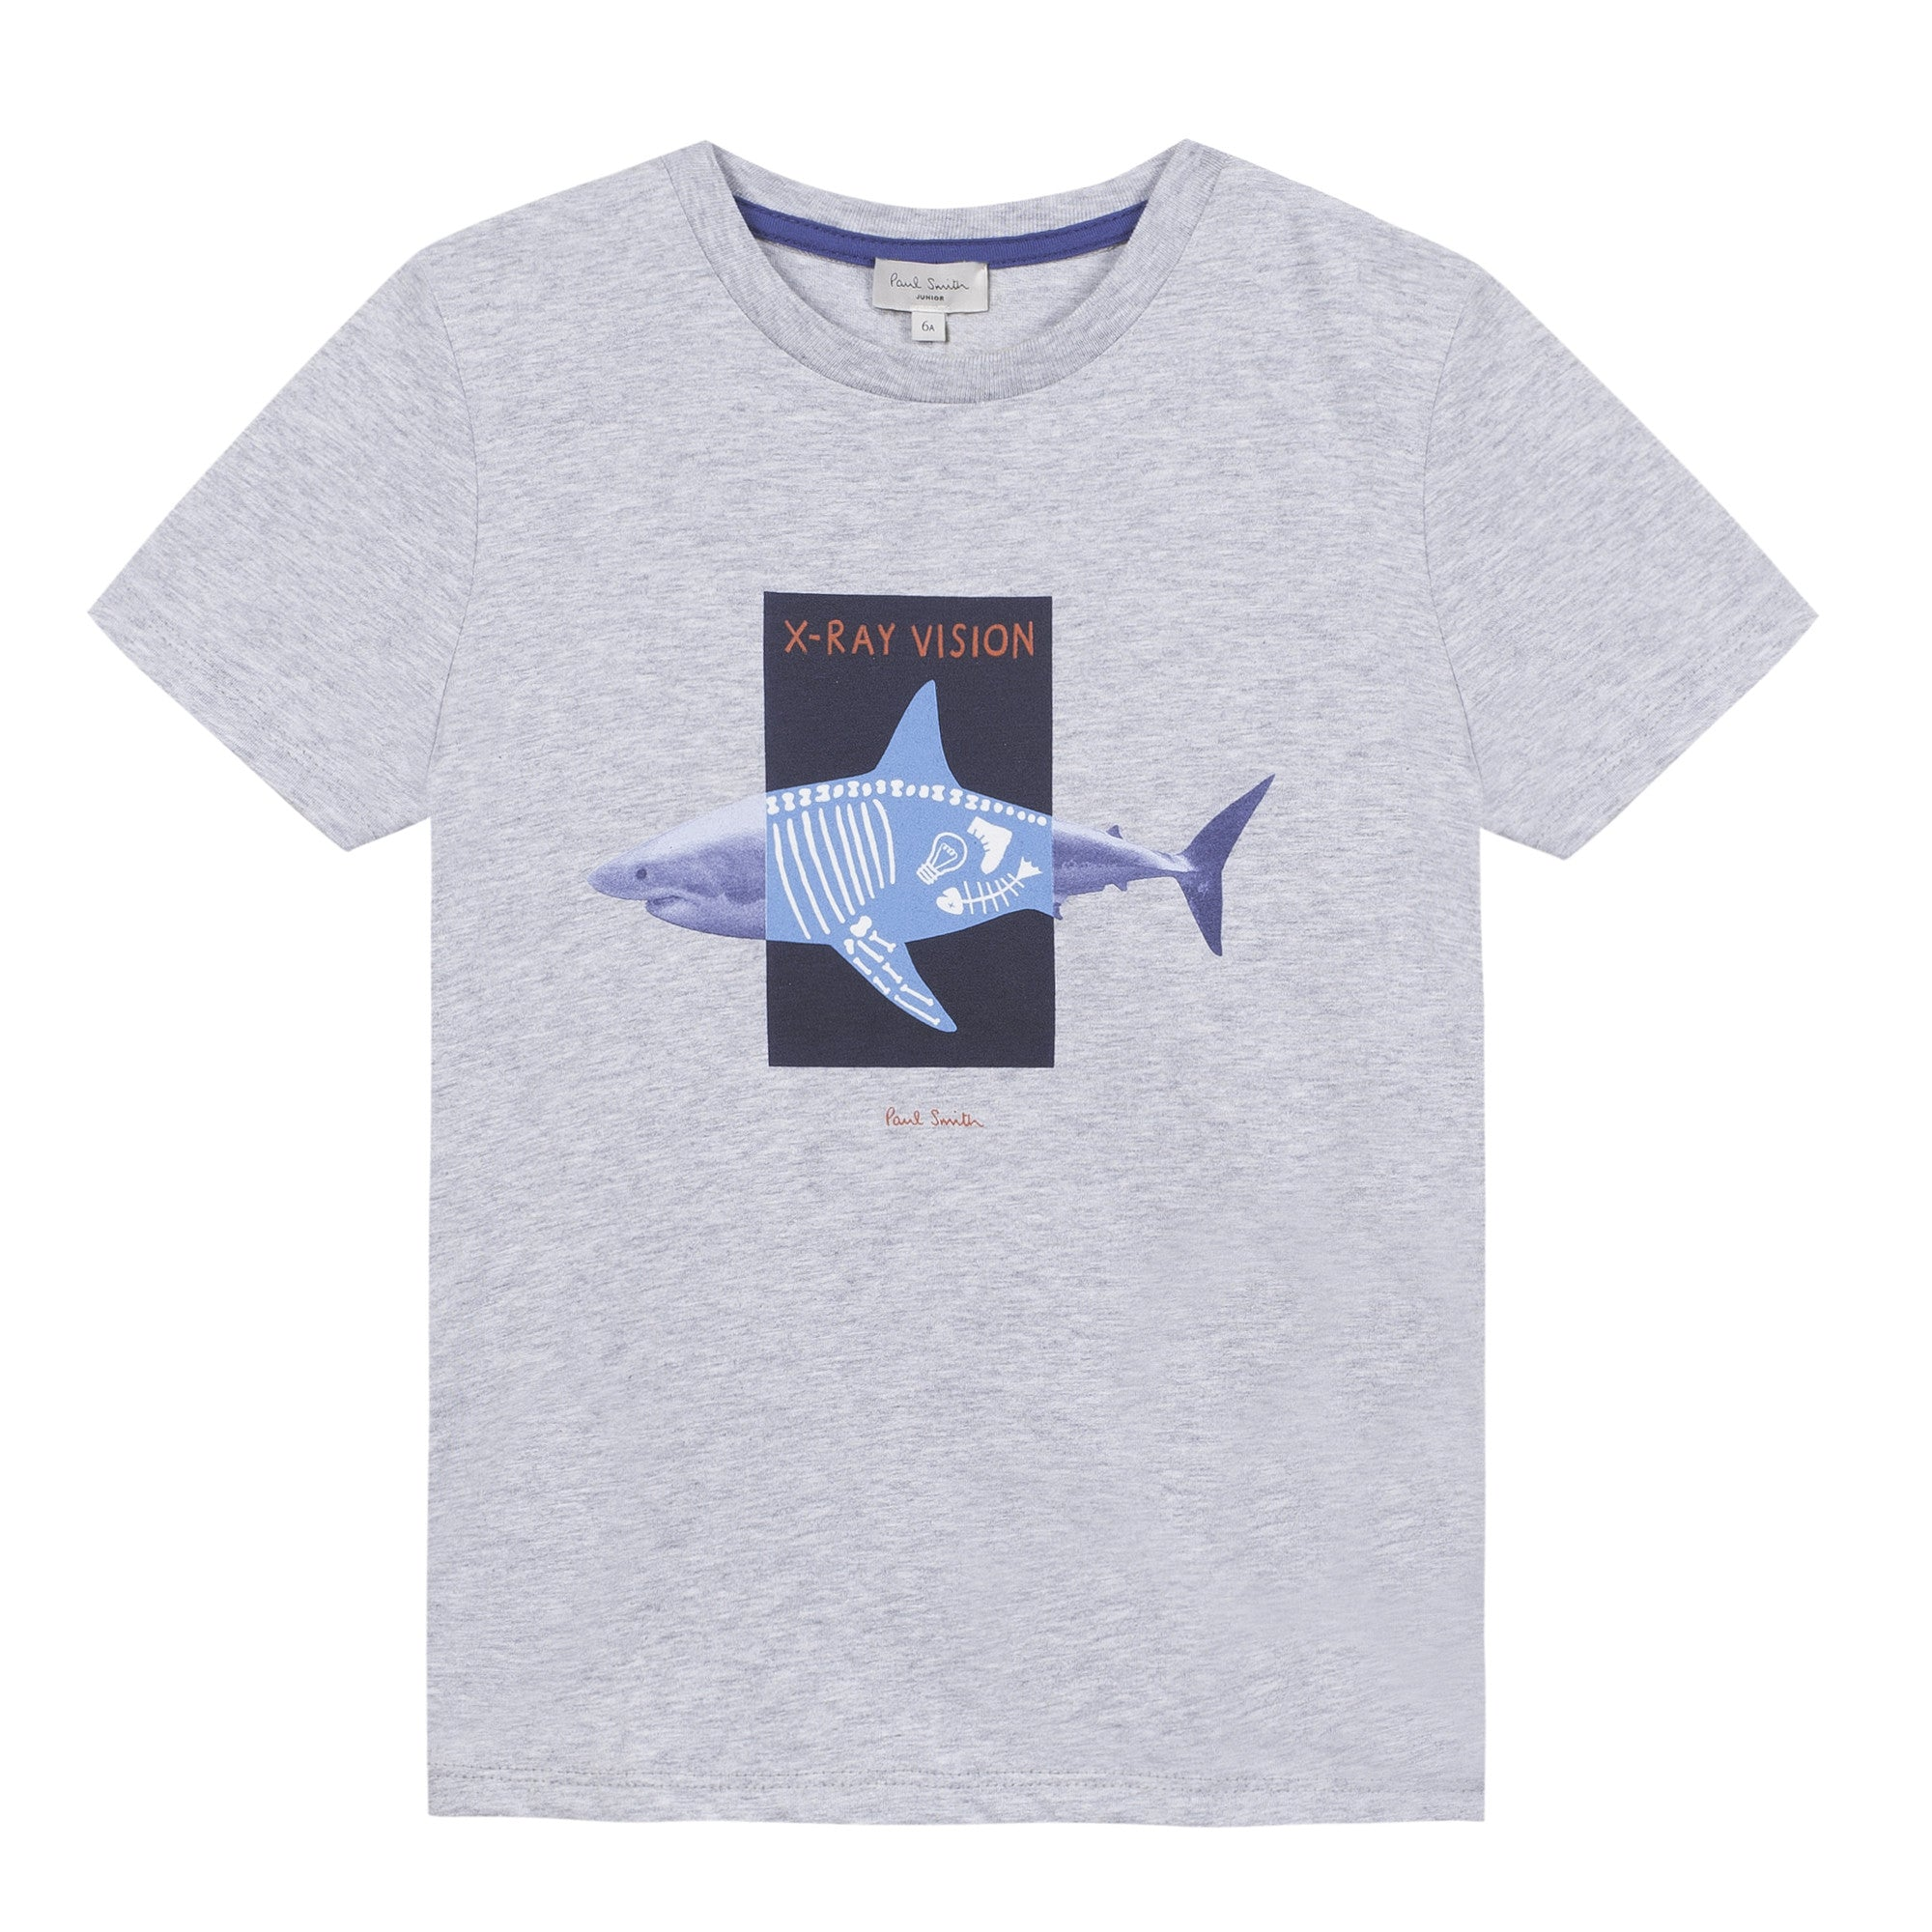 Paul Smith Grey Shark Tee - Ladida